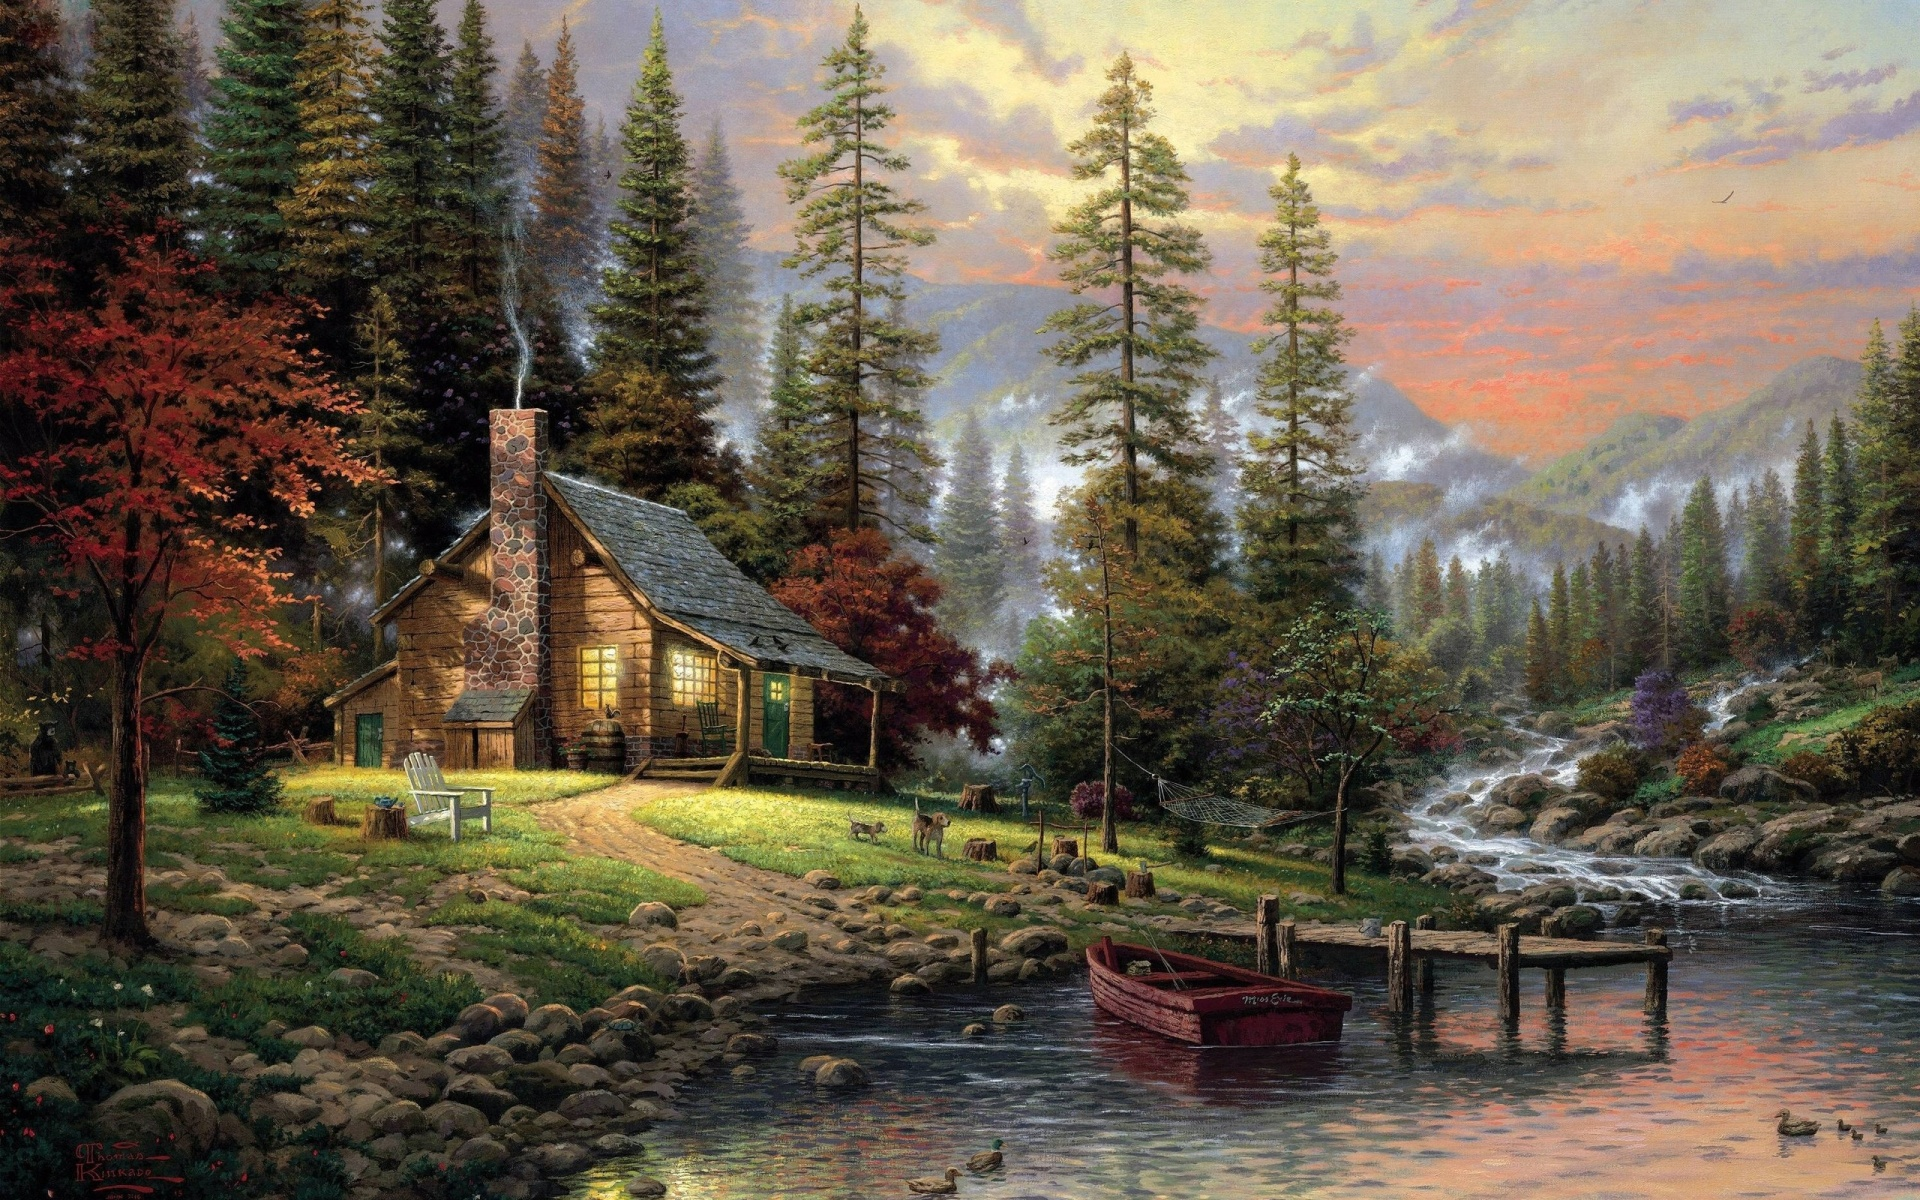 Mountain Cabin Painting Wallpaper WallpaperzCO 1920x1200